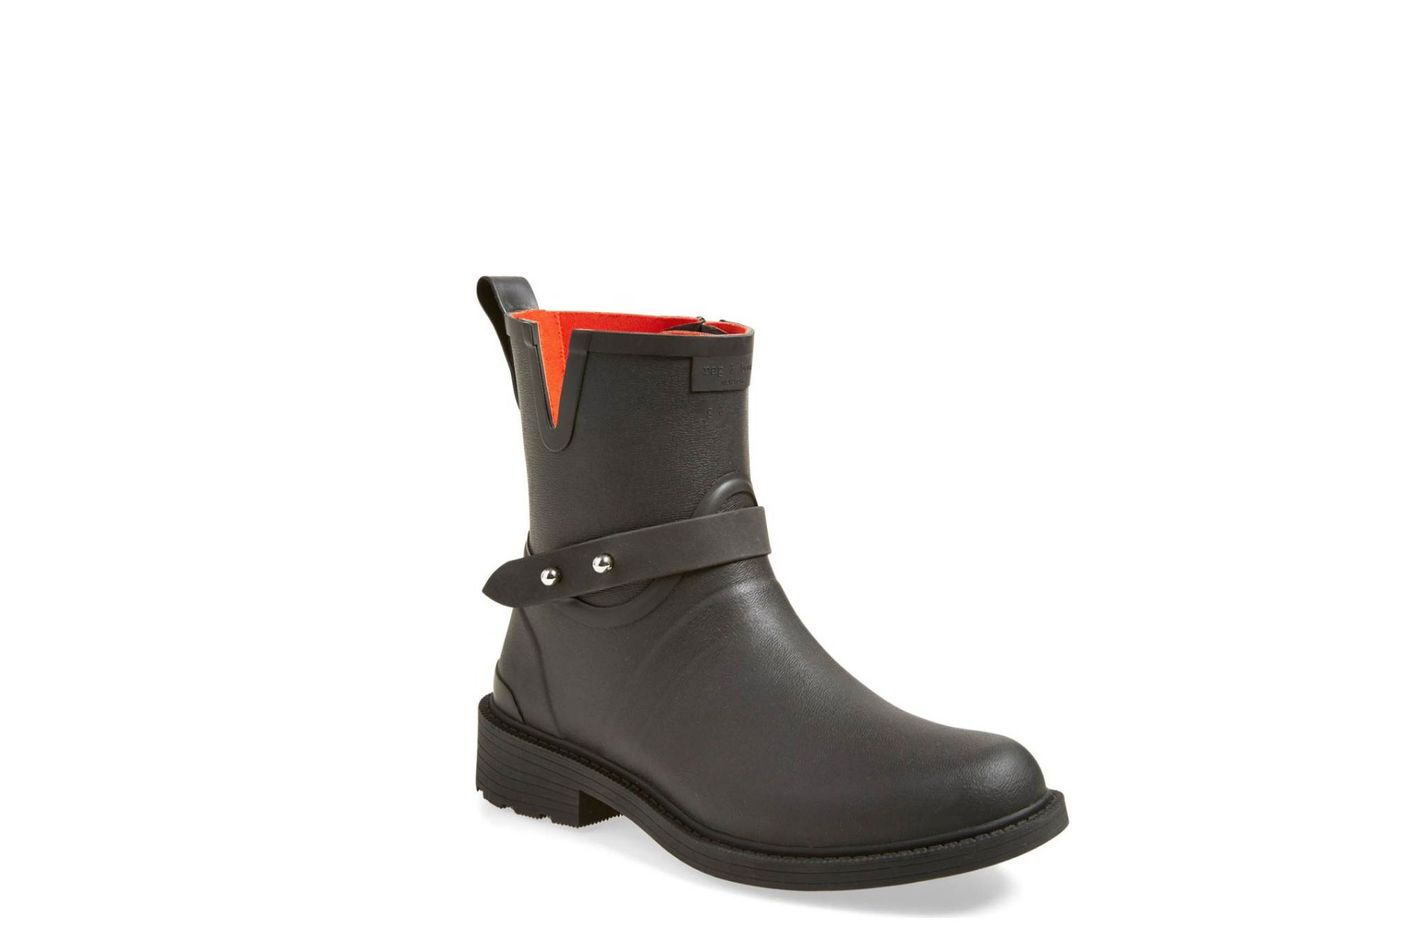 19e22a26787 The 15 Best Rain Boots for Women 2018